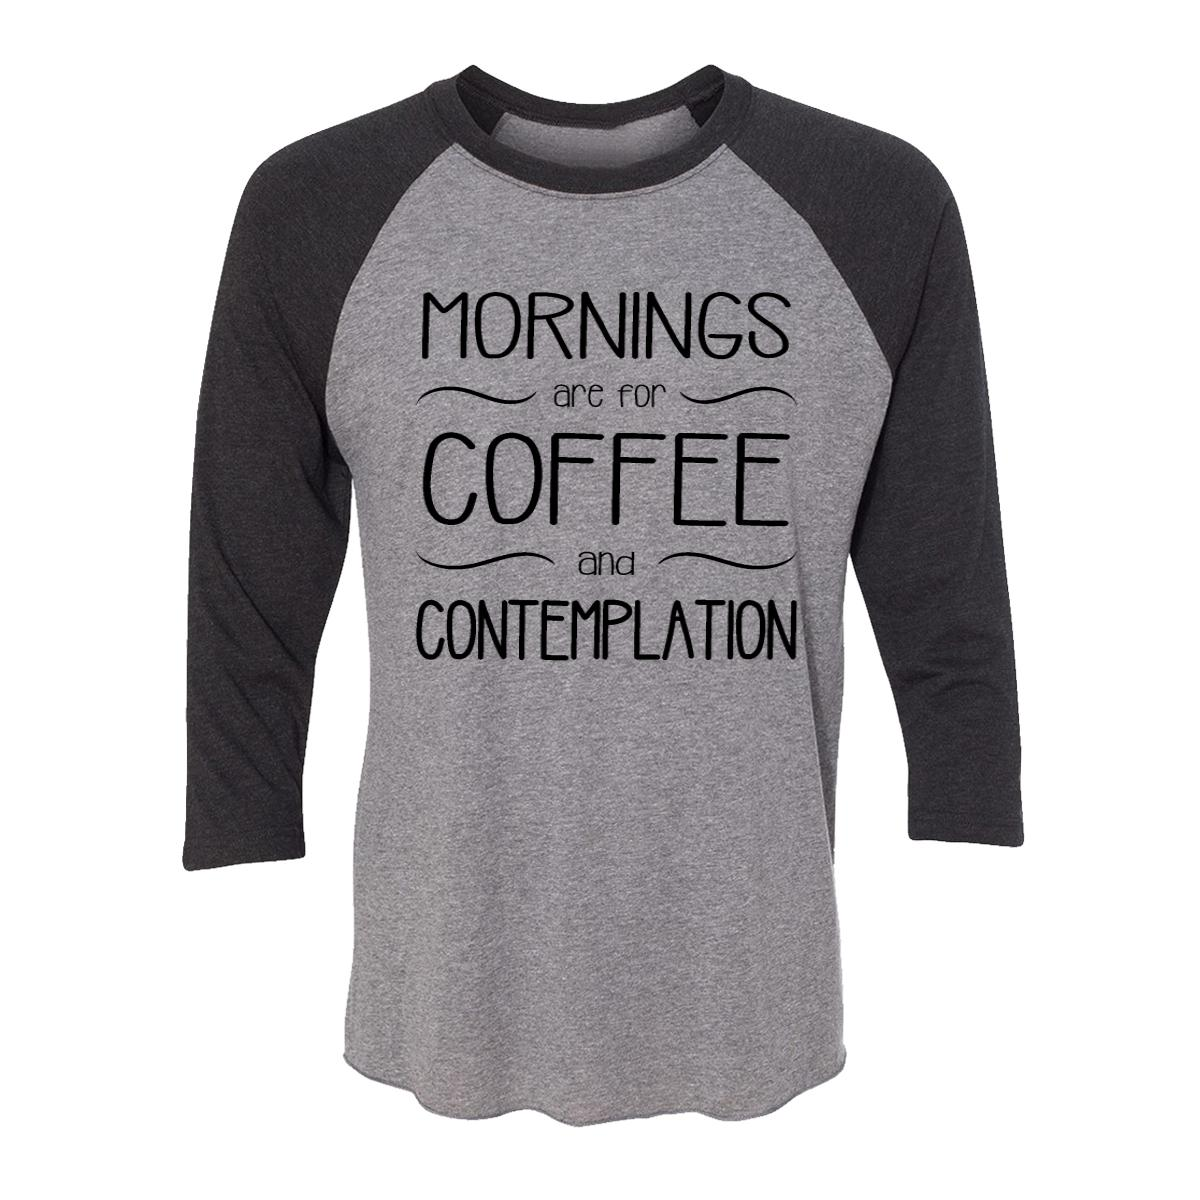 Mornings Are For Coffee And Contemplation Adult Baseball Shirt